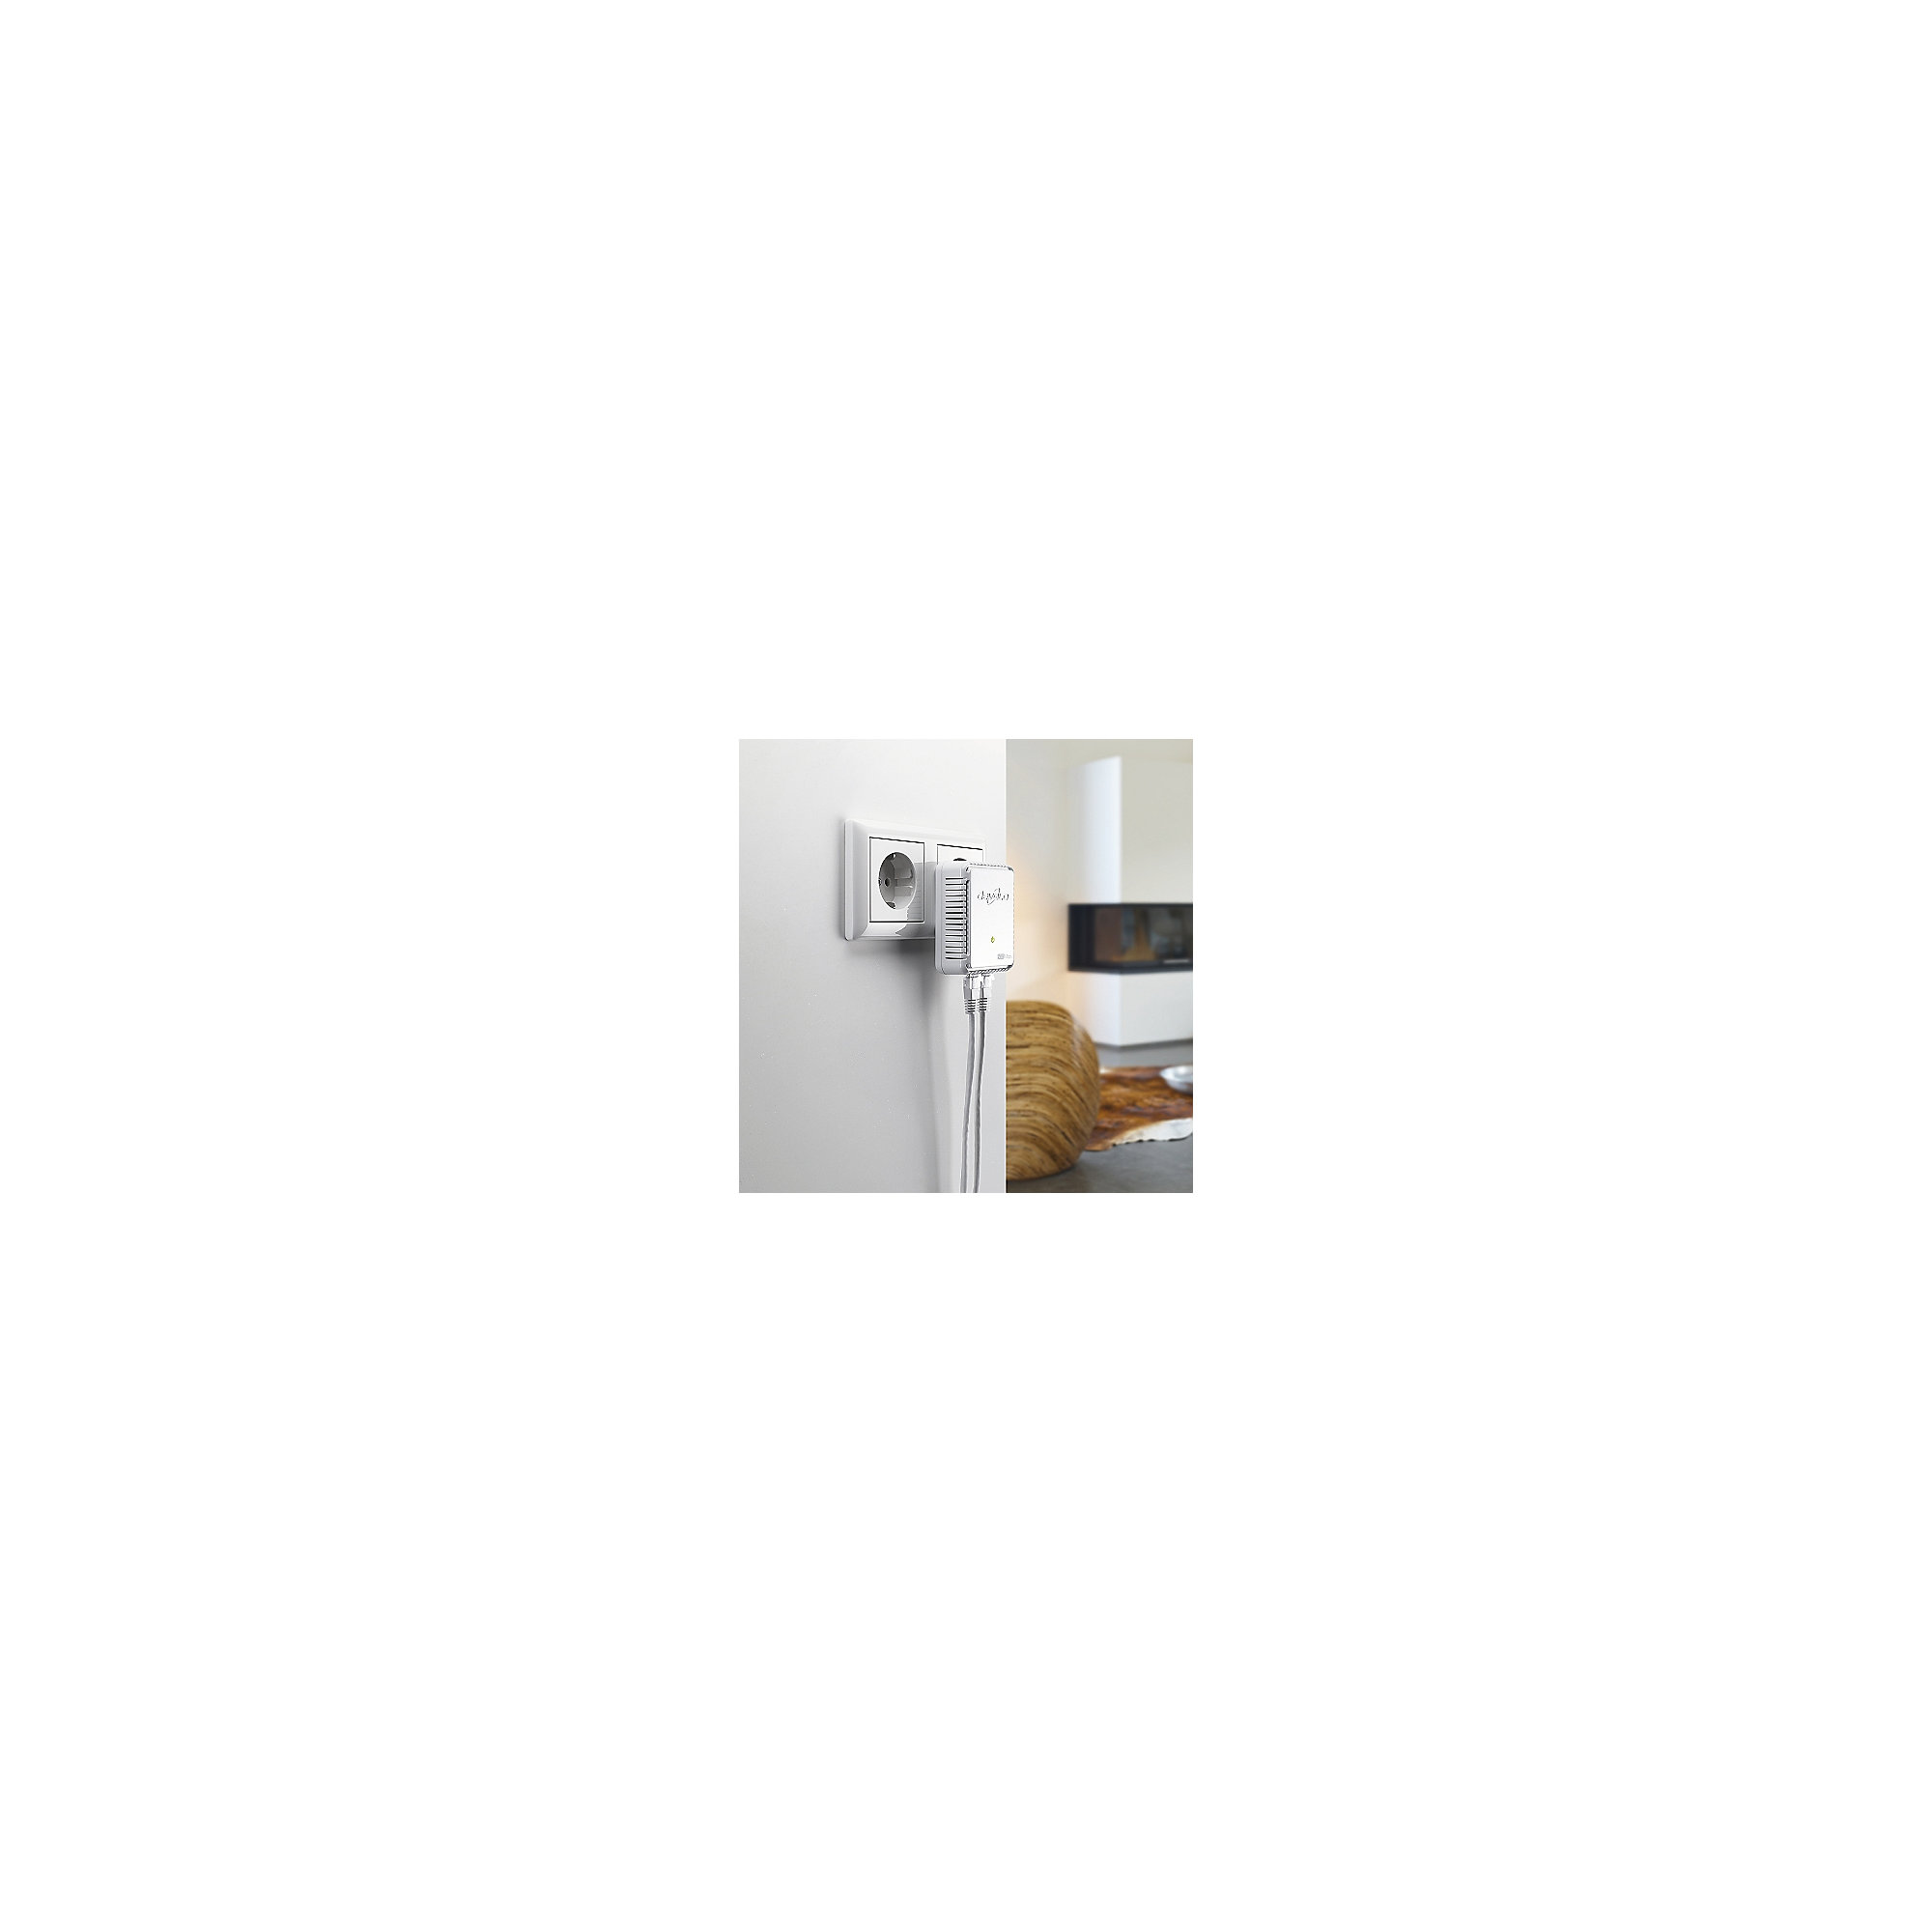 devolo dLAN 500 duo Starter Kit HomePlug AV (2 Stk.)